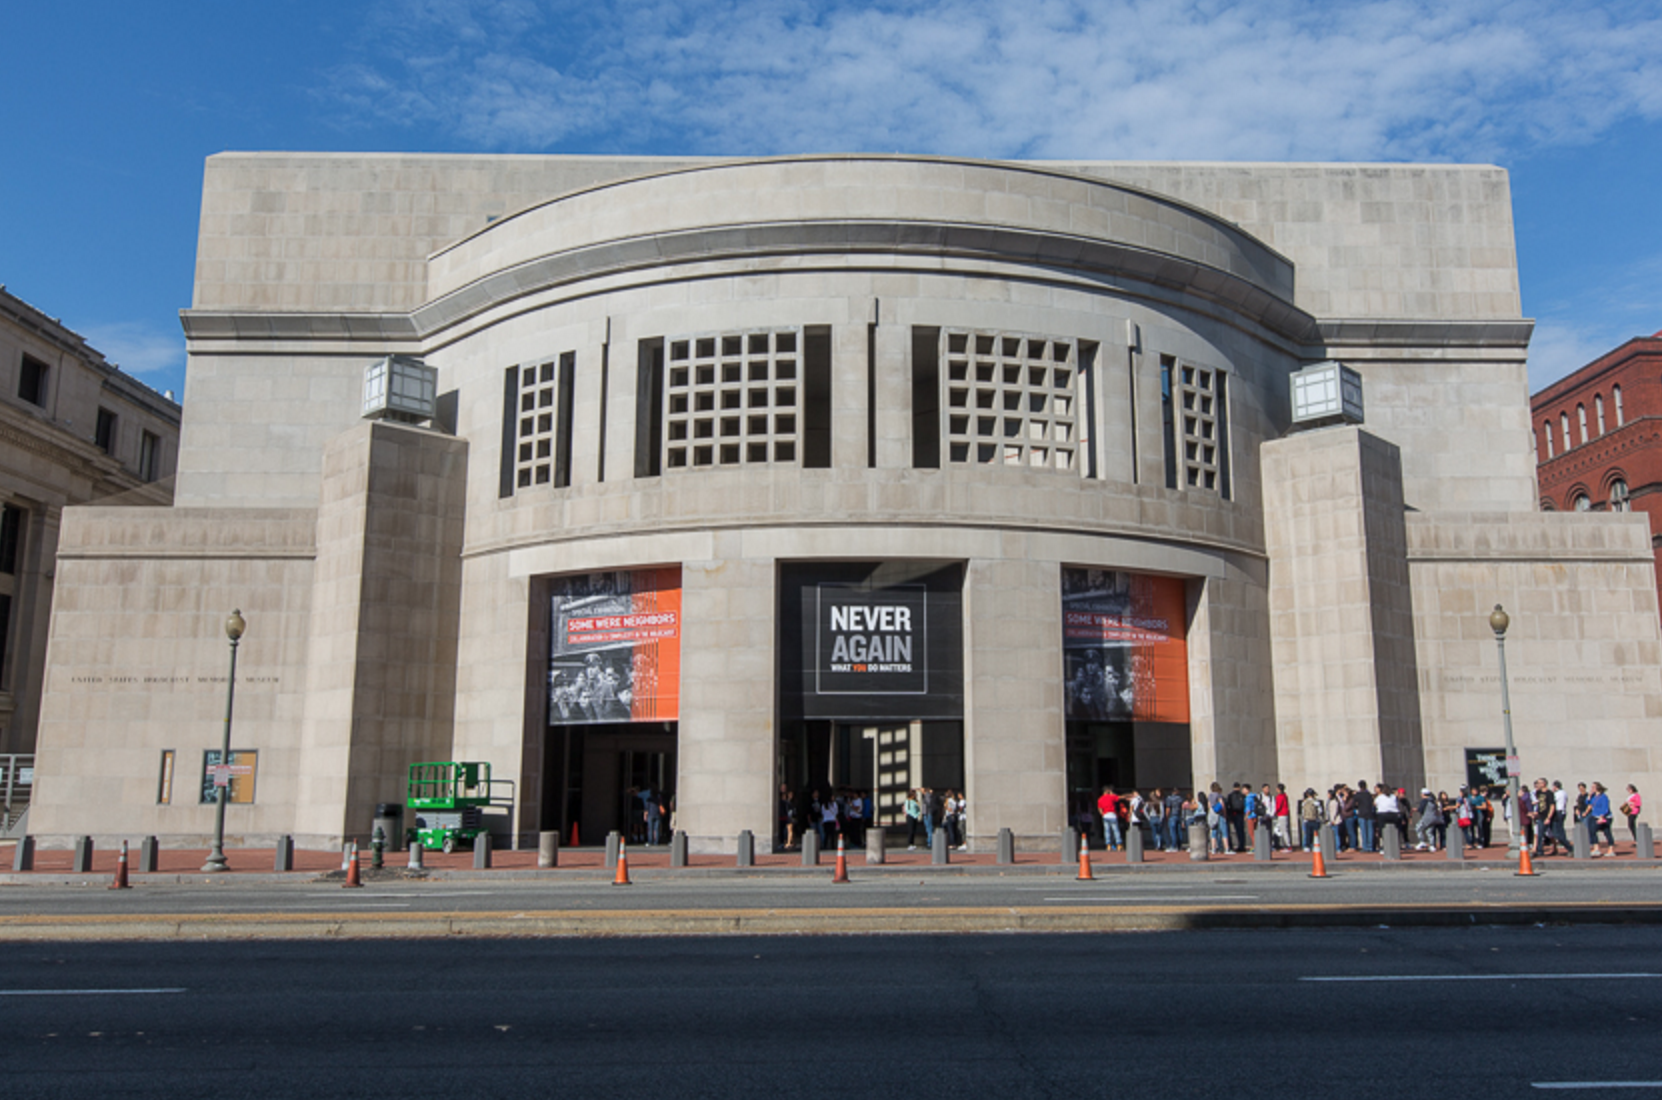 """US Holocaust Museum on Twitter: """"Stay connected with #USHMM by email. -->https://t.co/BtQEKCTzWO #2015Parliament https://t.co/hfLpyodsBG"""""""